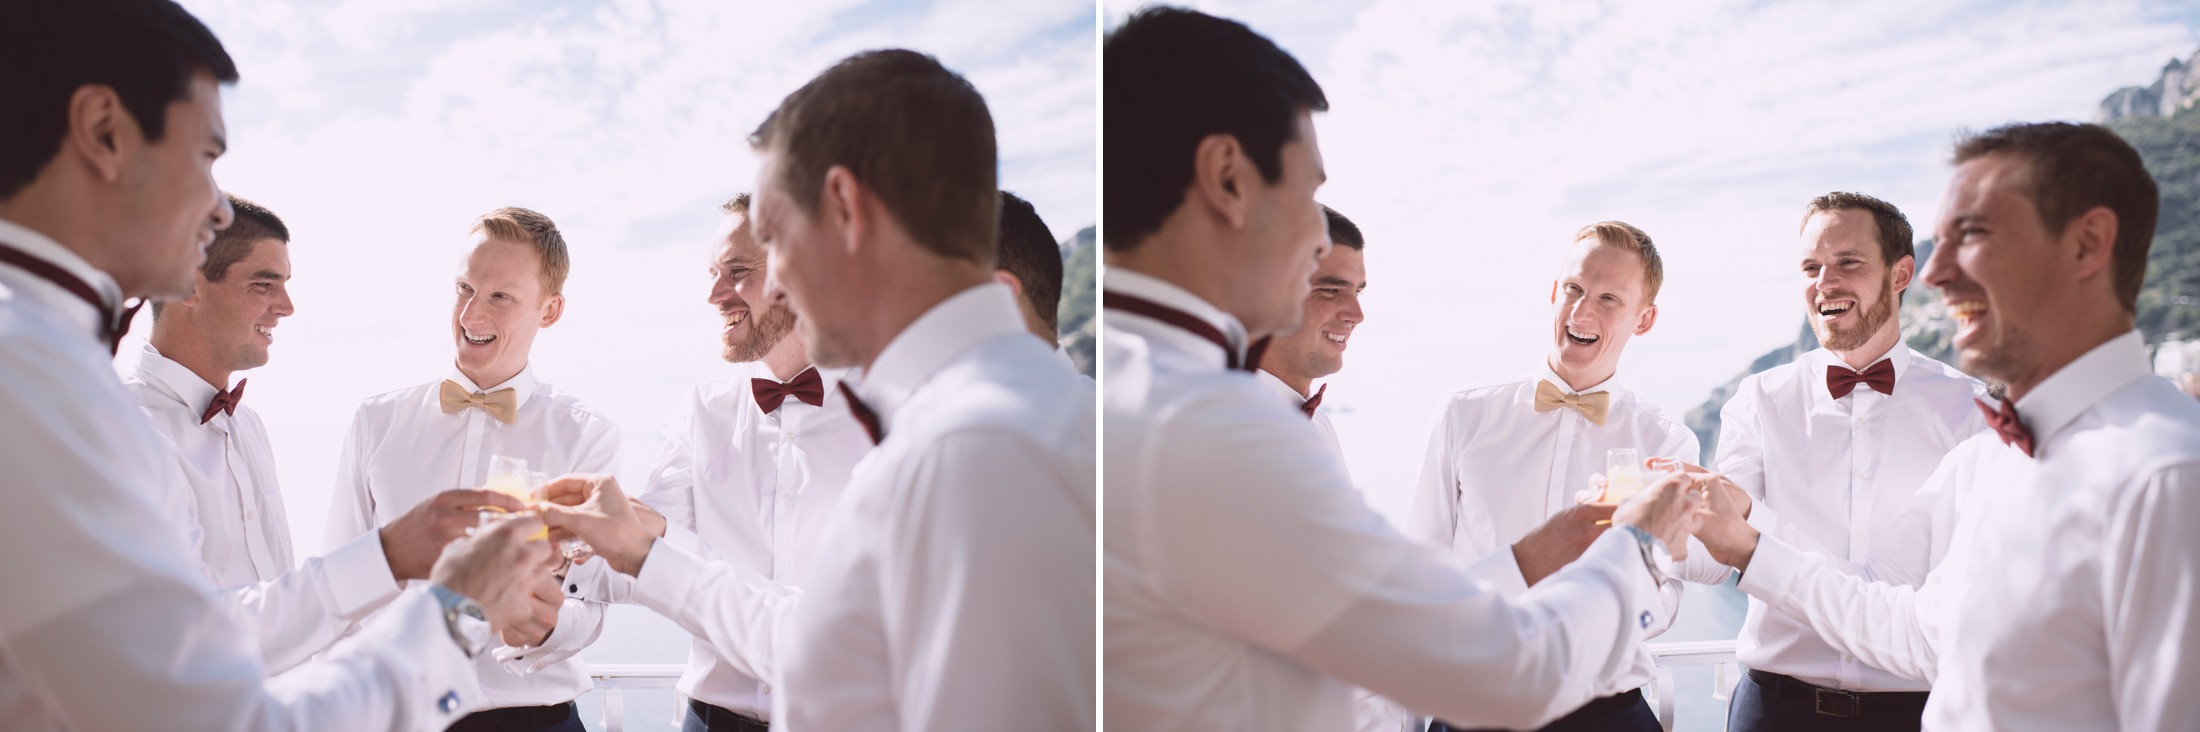 positano wedding collage groom and best men getting ready